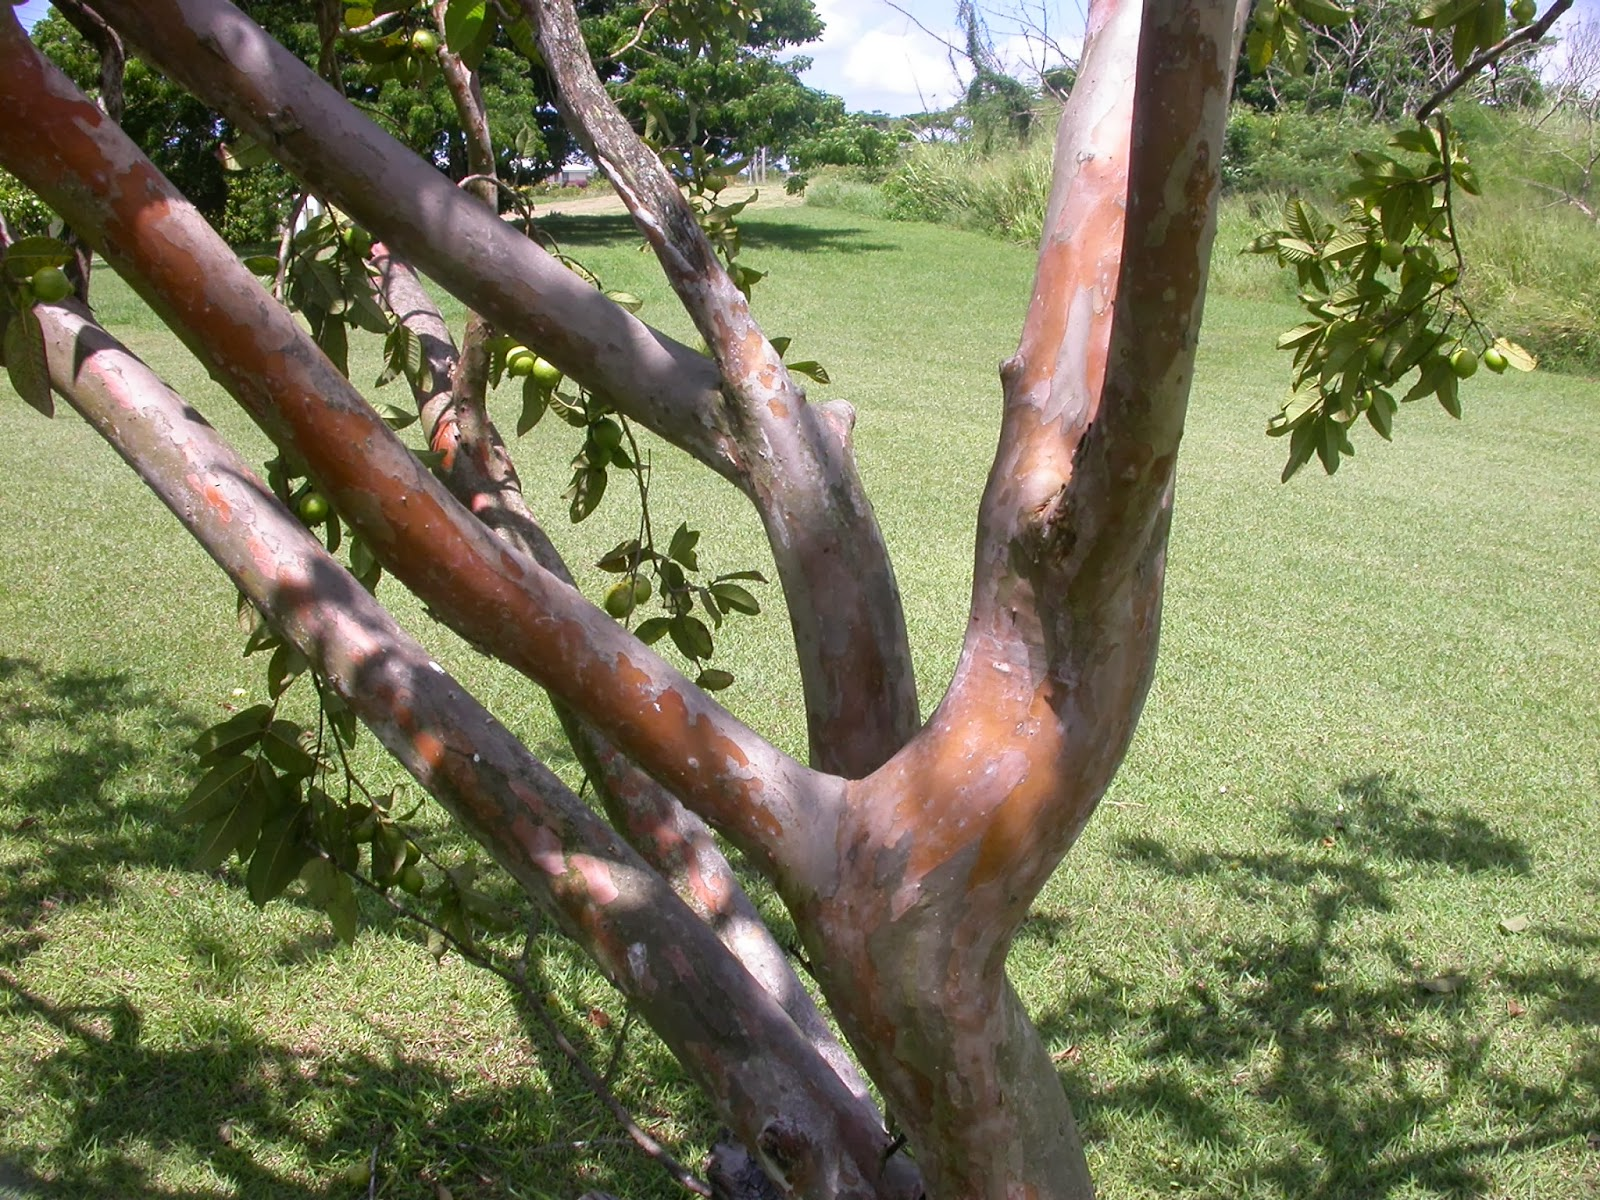 Barbados flora fauna guava trees psidium guajava the bark of the guava tree is smooth and mottled as shown here and the dark green leaves are coarse and rough small white flowers produce fruit anywhere mightylinksfo